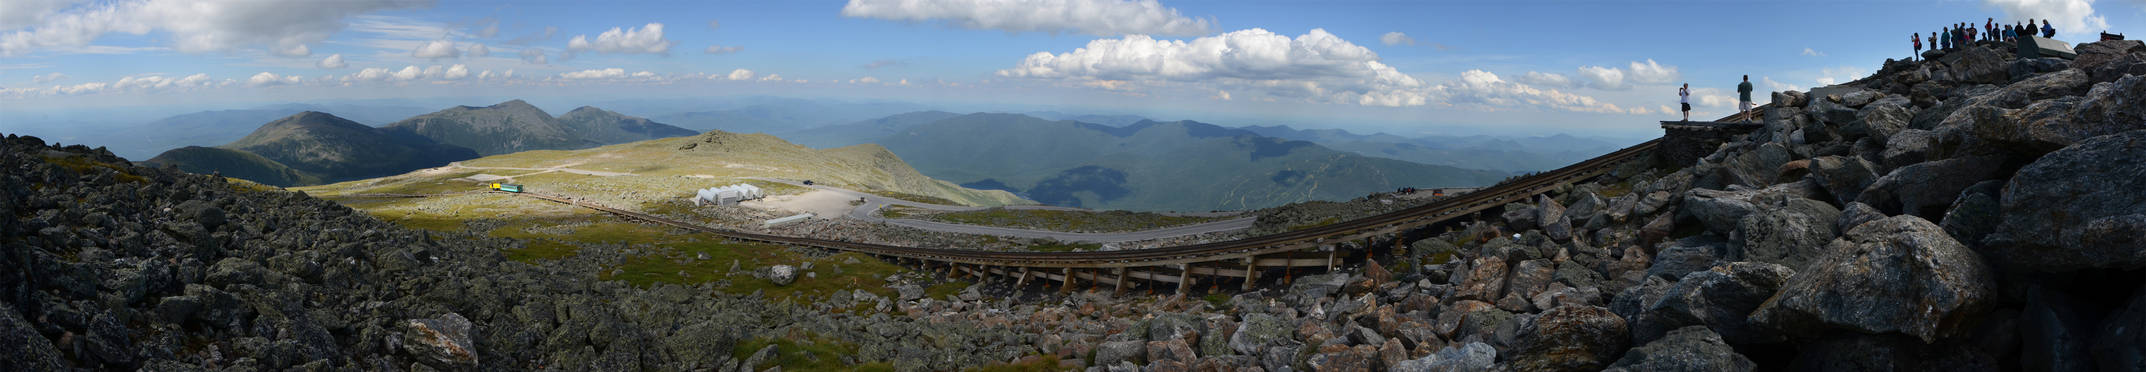 Mount Washington 2012-08-08 2